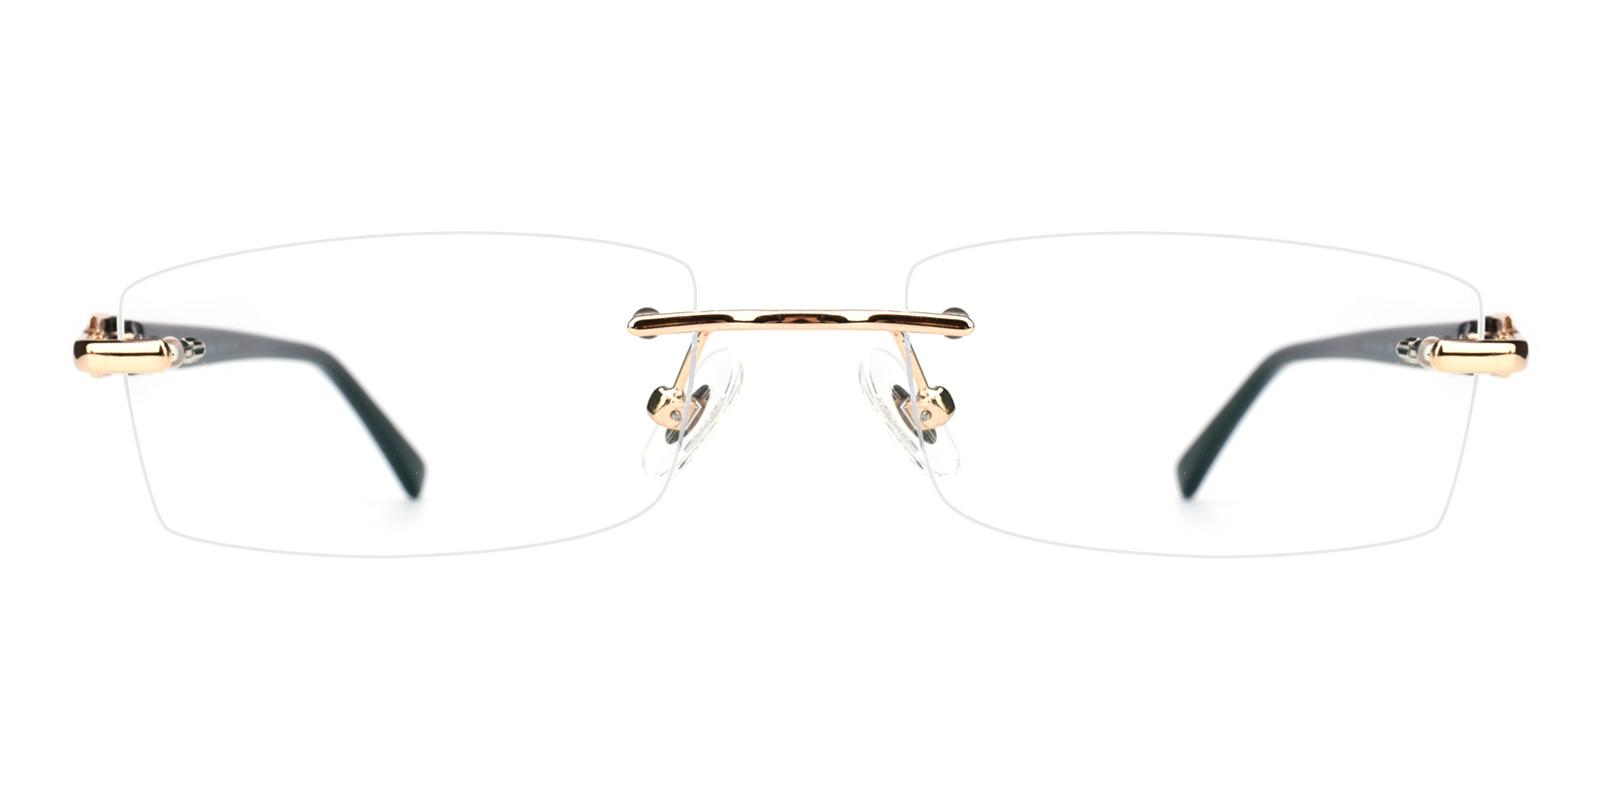 Cement-Gold-Rectangle-Acetate / Metal-Eyeglasses-detail